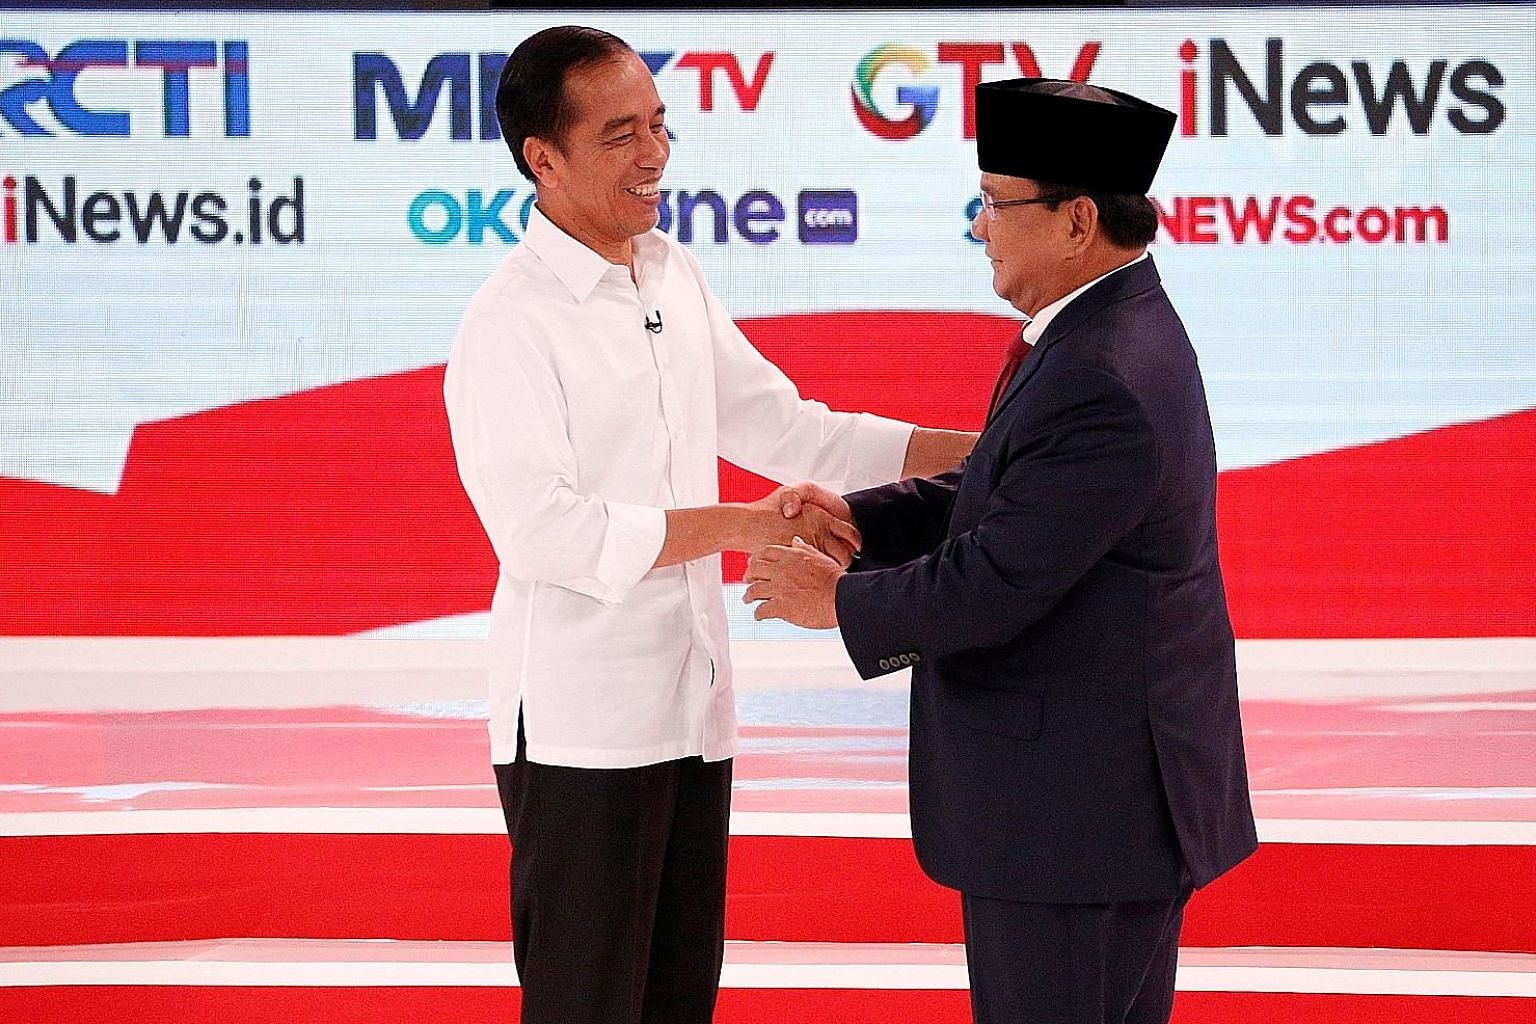 Indonesian President Joko Widodo (left) with challenger Prabowo Subianto at an election debate last month. A new survey shows the electability of Mr Joko's team has dropped to 49.2 per cent, from 52.6 per cent six months ago.